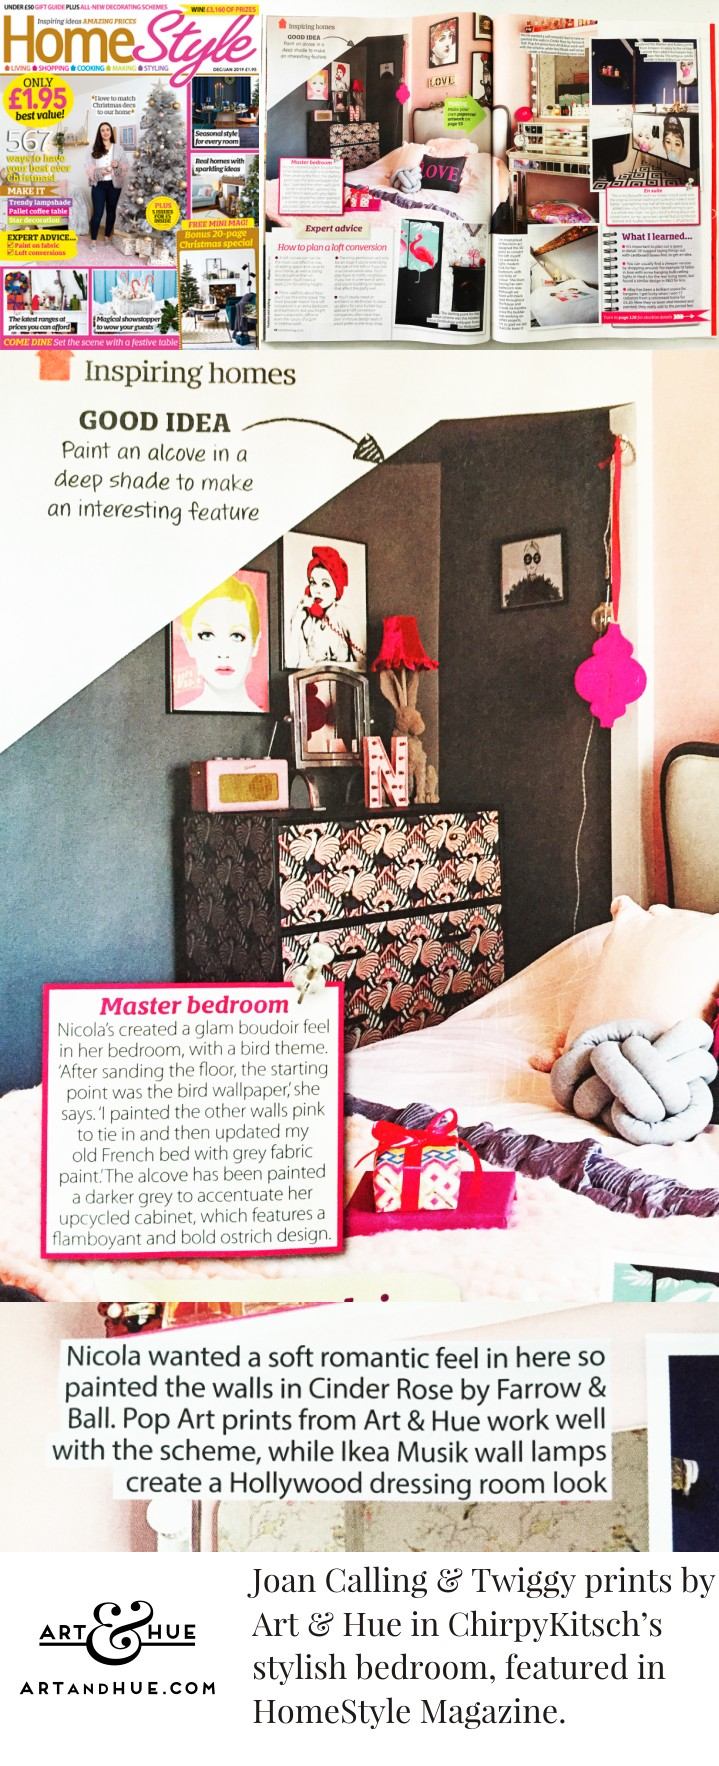 HomeStyle Magazine featuring ChirpyKitschs bedroom with Art & Hue prints